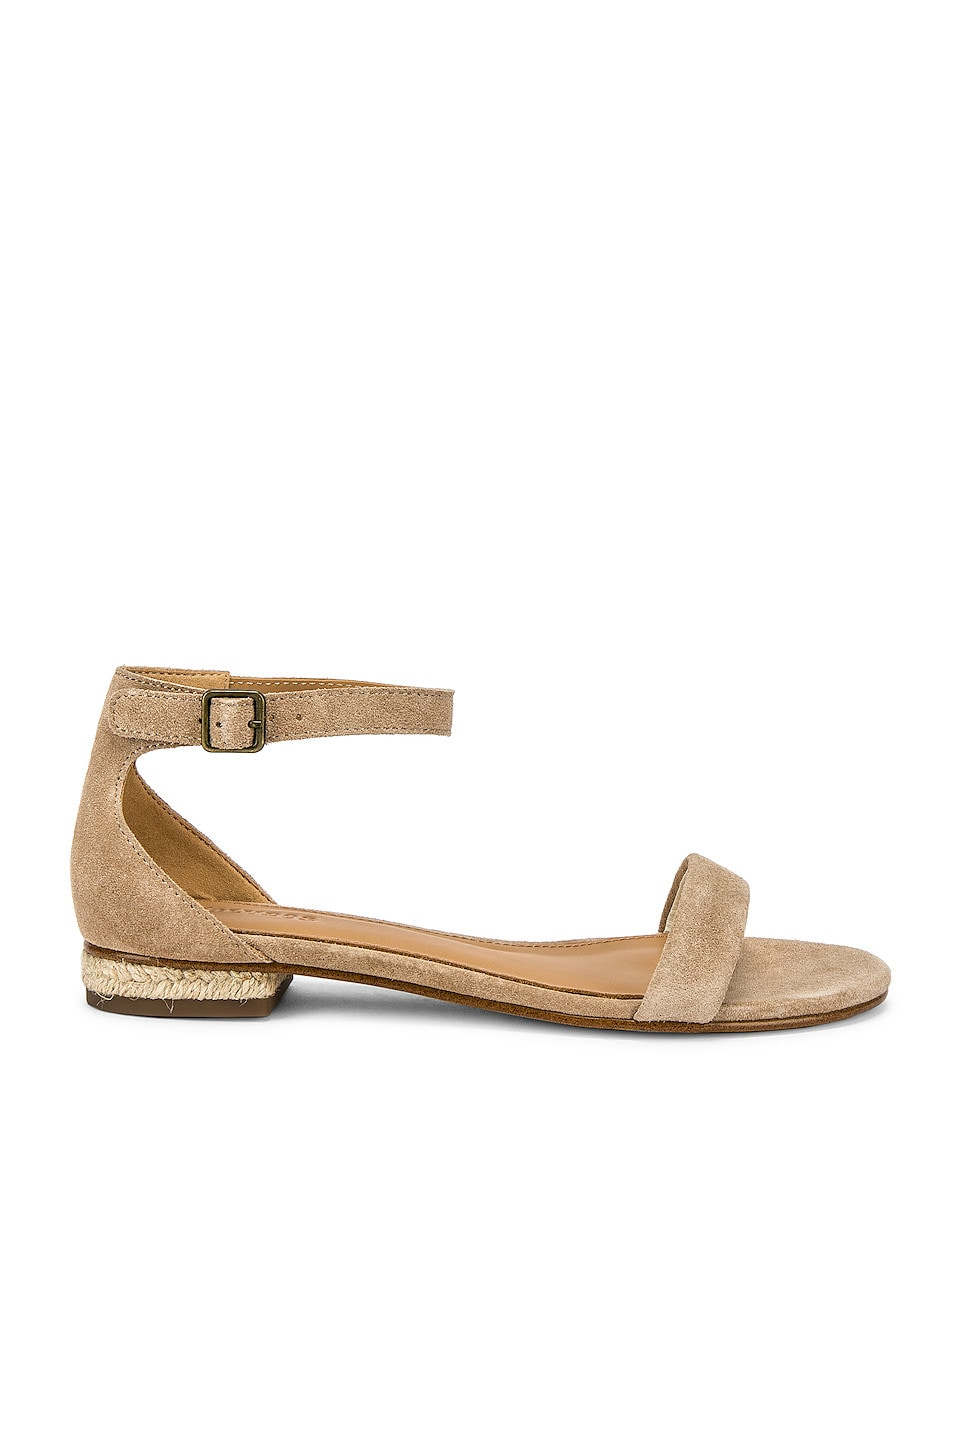 Soludos Capri Sandal in Blush